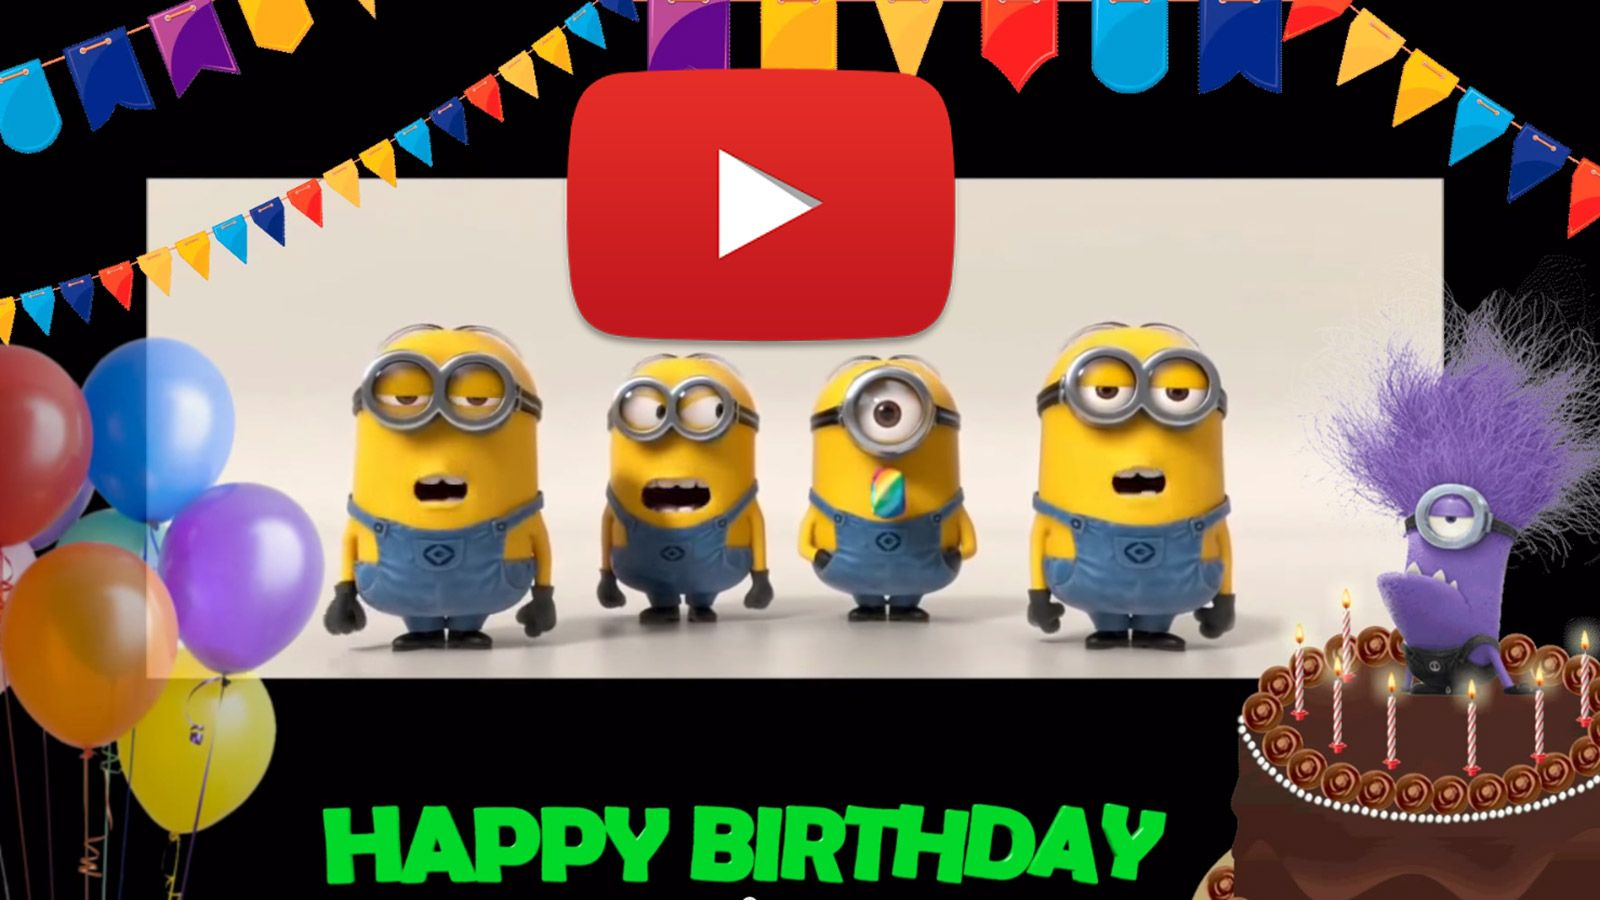 Happy Birthday to you! Minions Birthday song. http